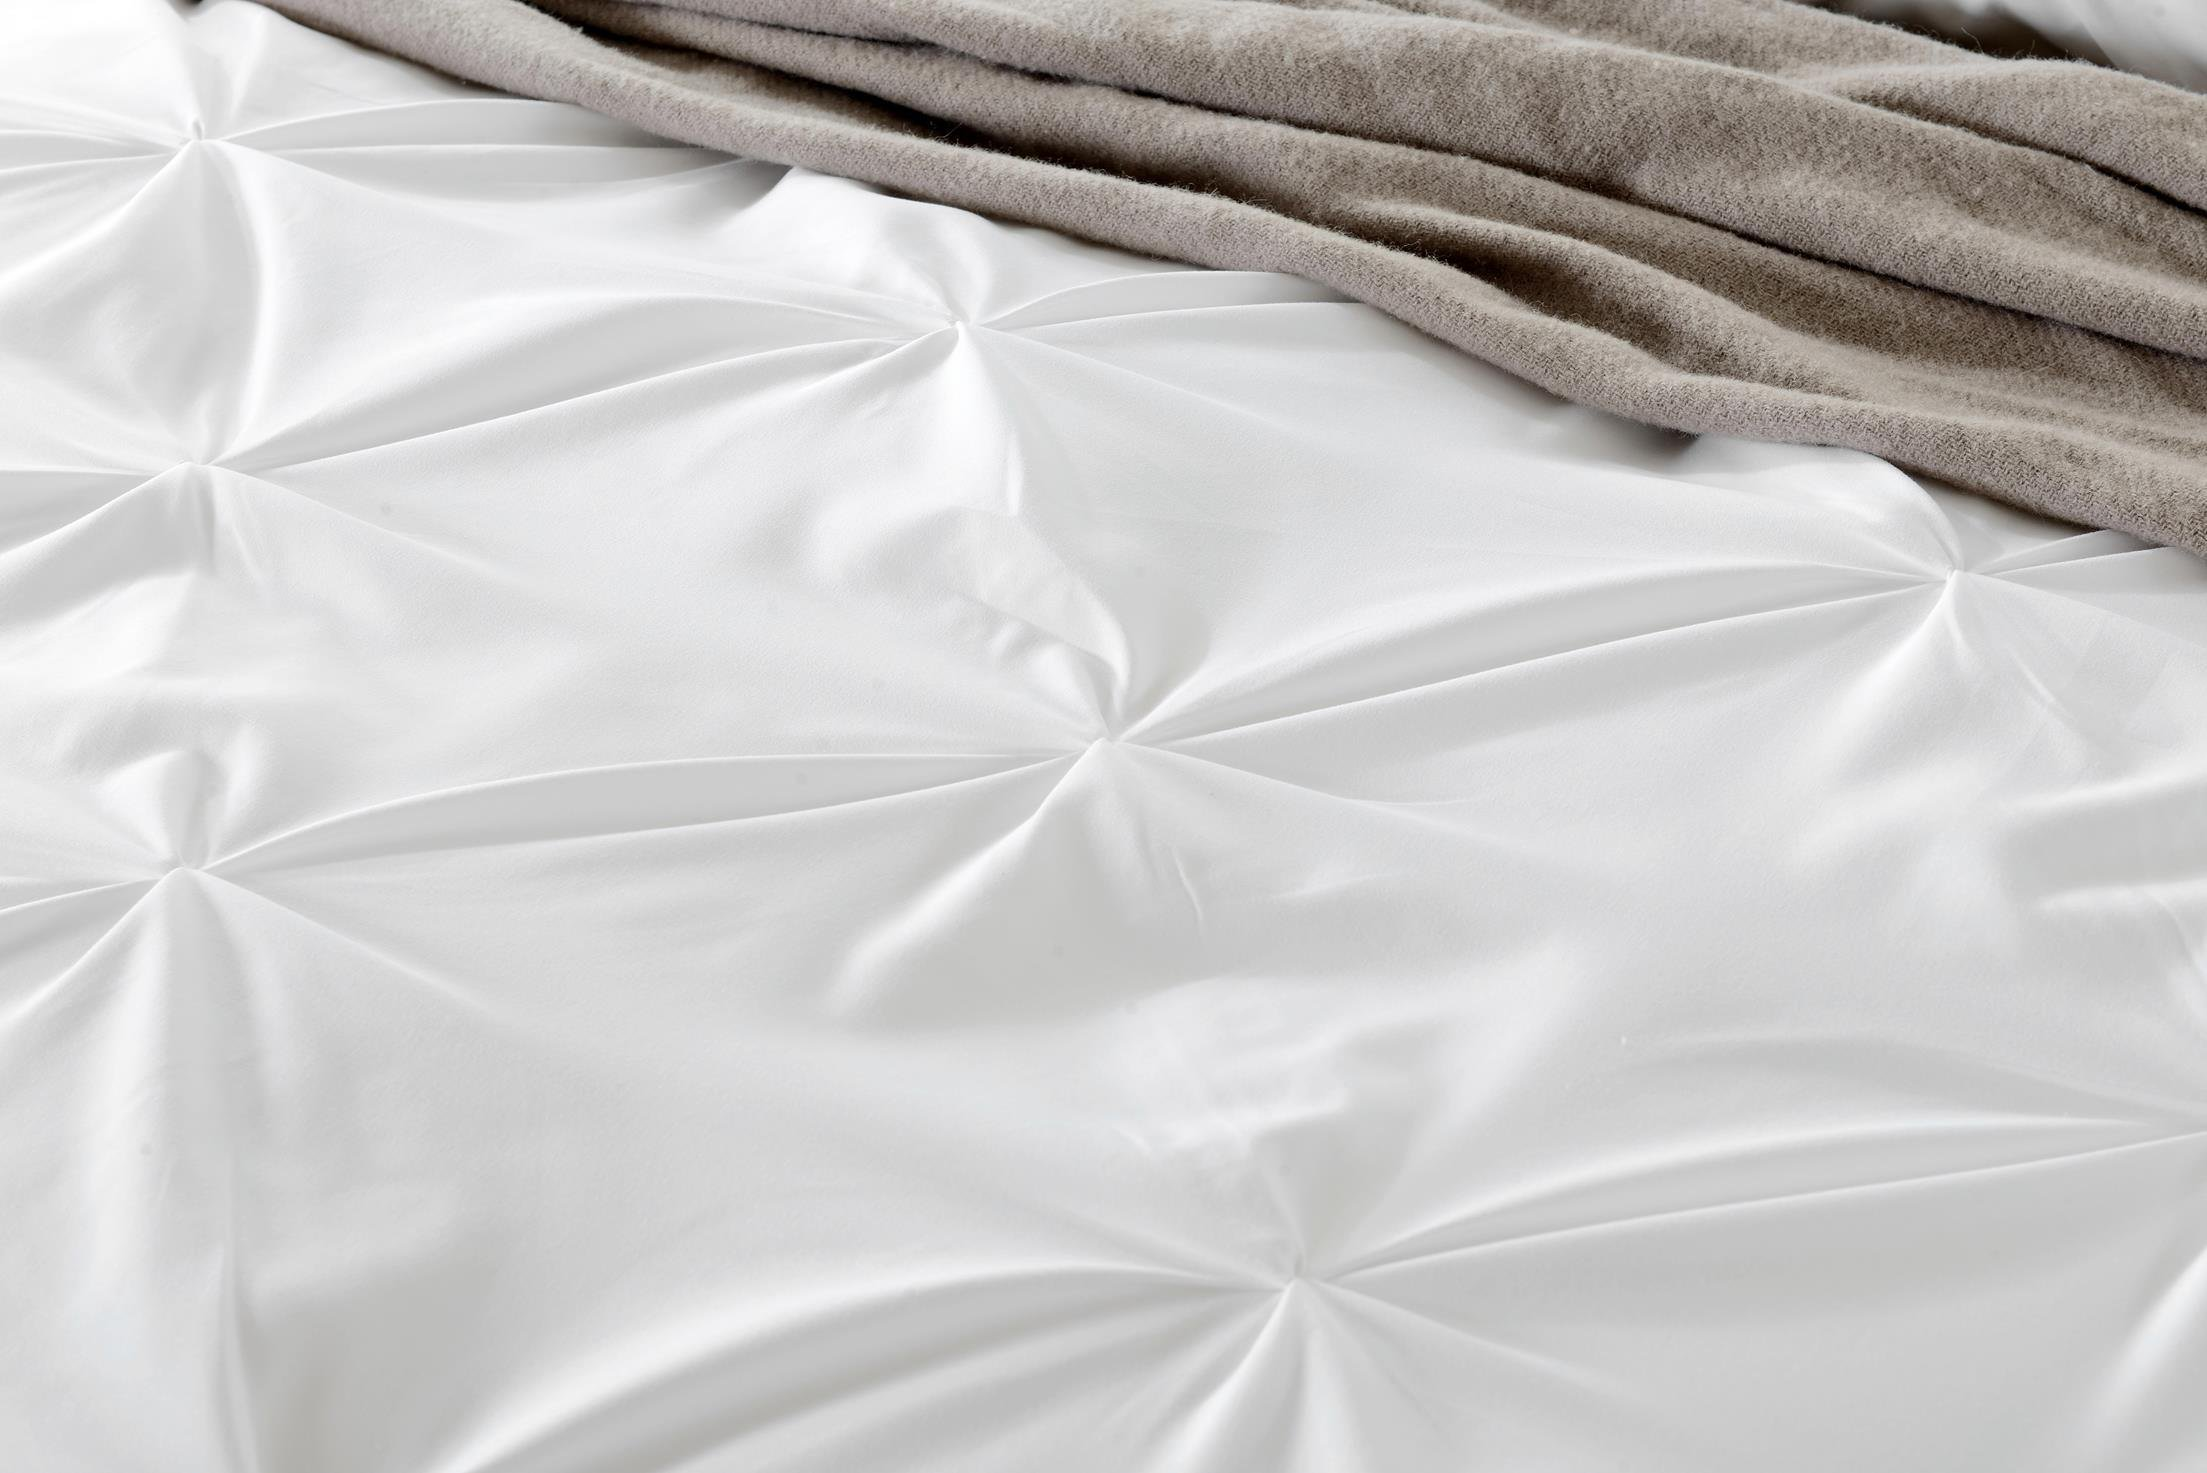 Reliable Bedding Soft Luxurious 3-Piece Pinch Pleated Duvet Cover Set Highest Quality 100% Egyptian Cotton 800 TC Stain Resistant Luxurious & Hypoallergenic Comforter Cover !!! (Silver!!Twin/Twin Xl) by RELIABLE BEDDING (Image #3)